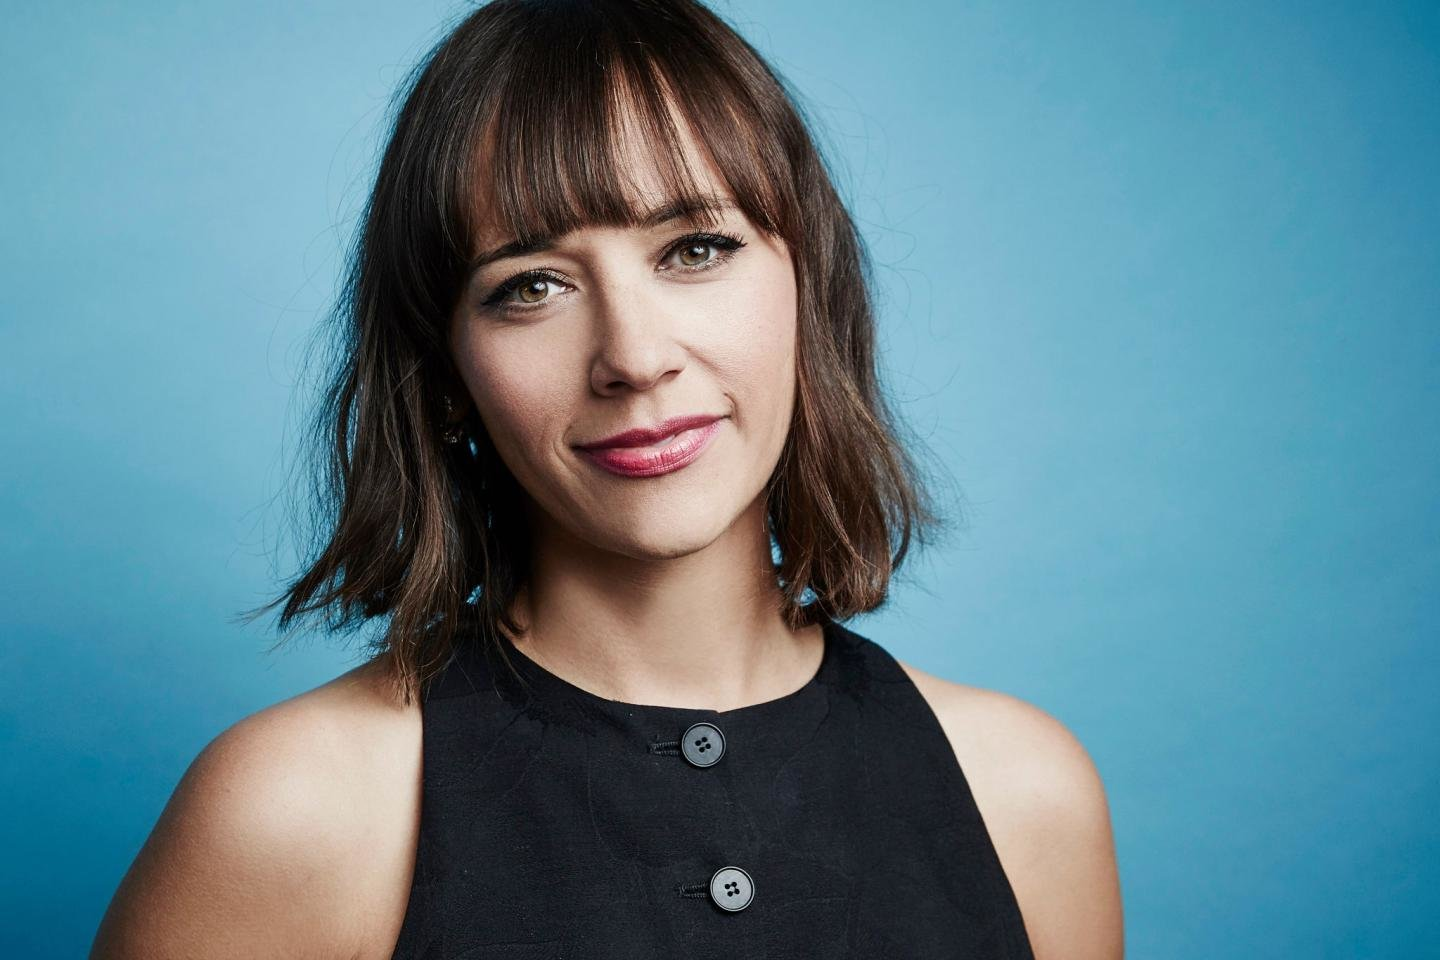 Download hd 1440x960 Rashida Jones PC wallpaper ID:245875 for free